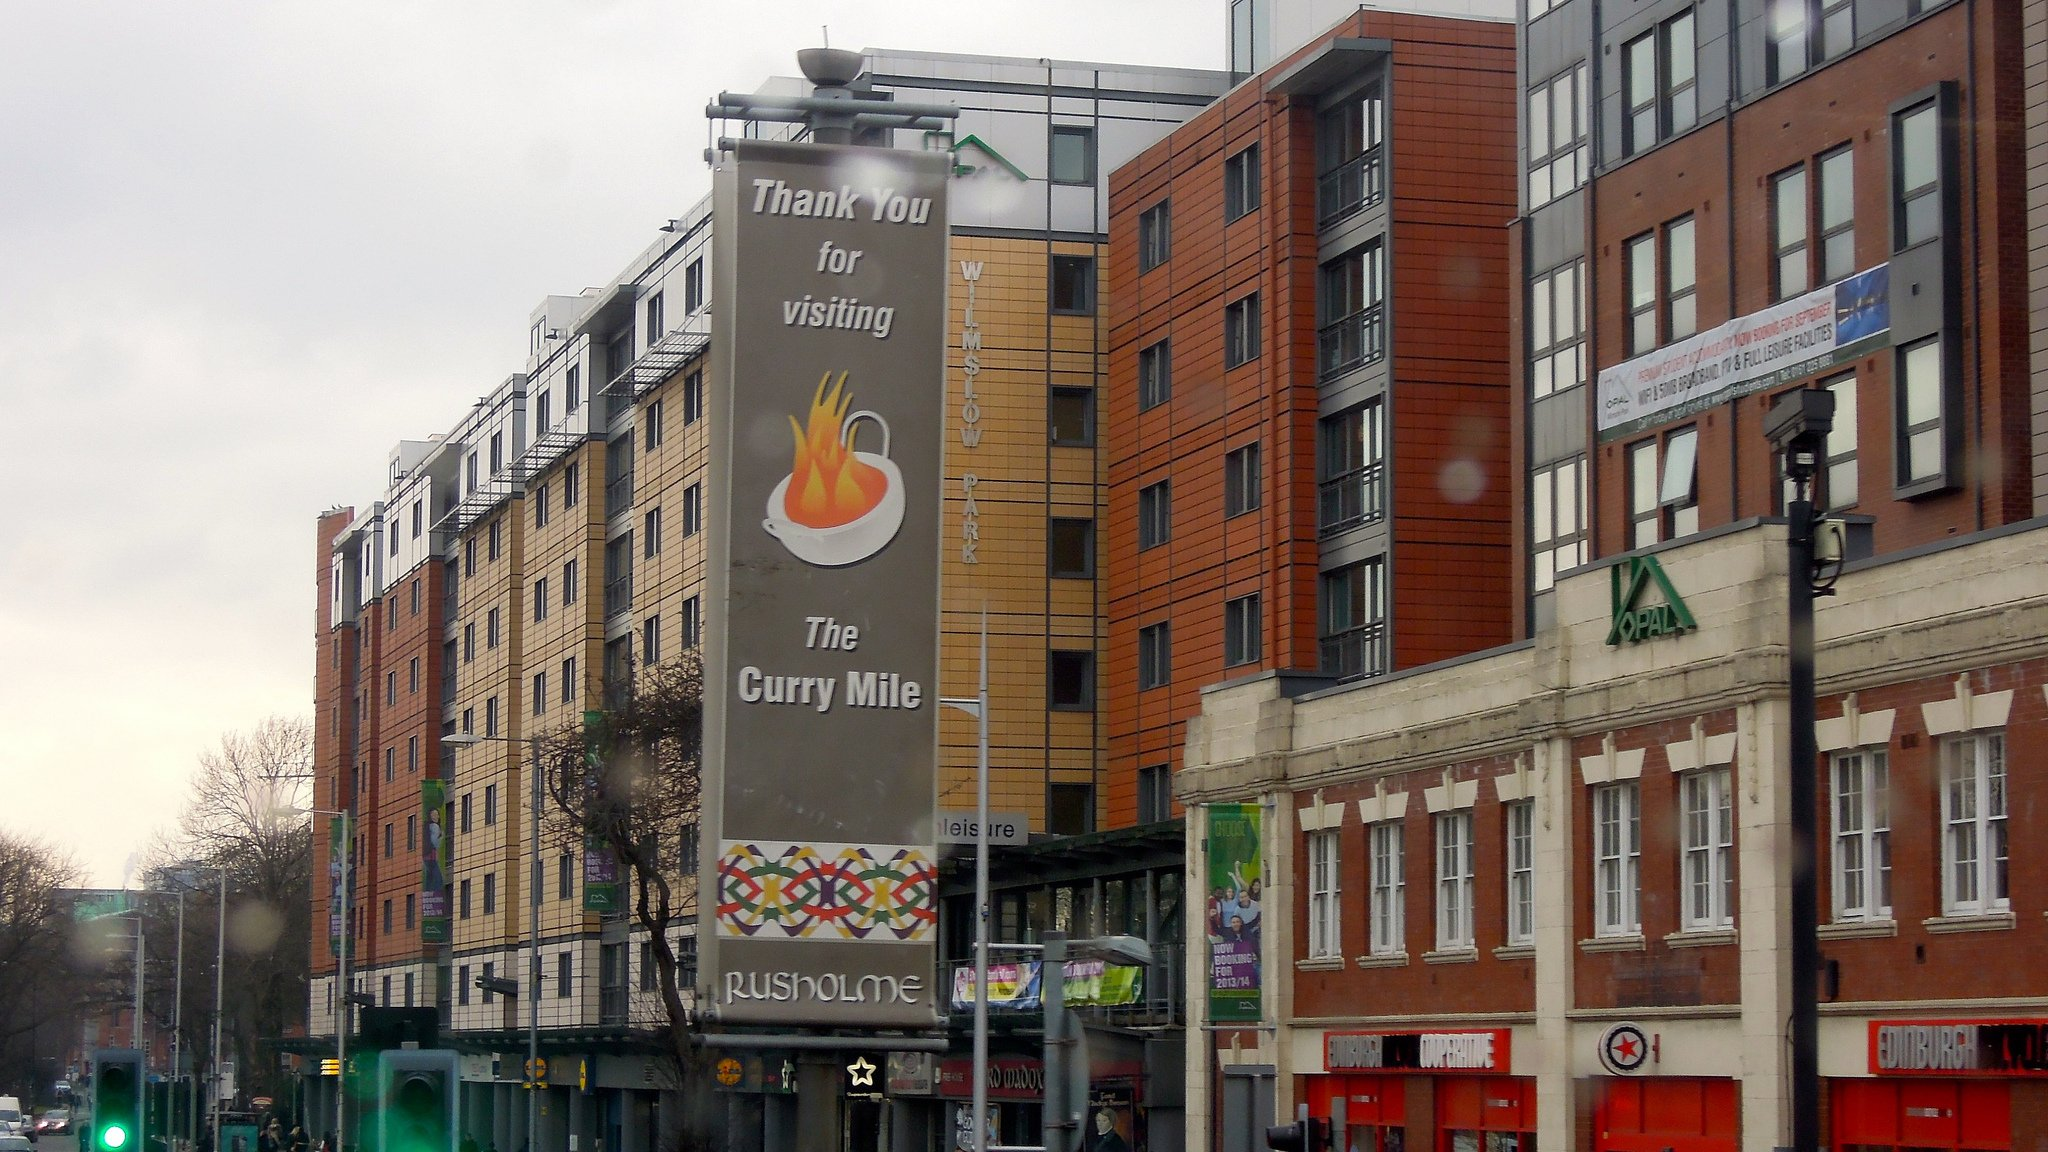 The Curry Mile